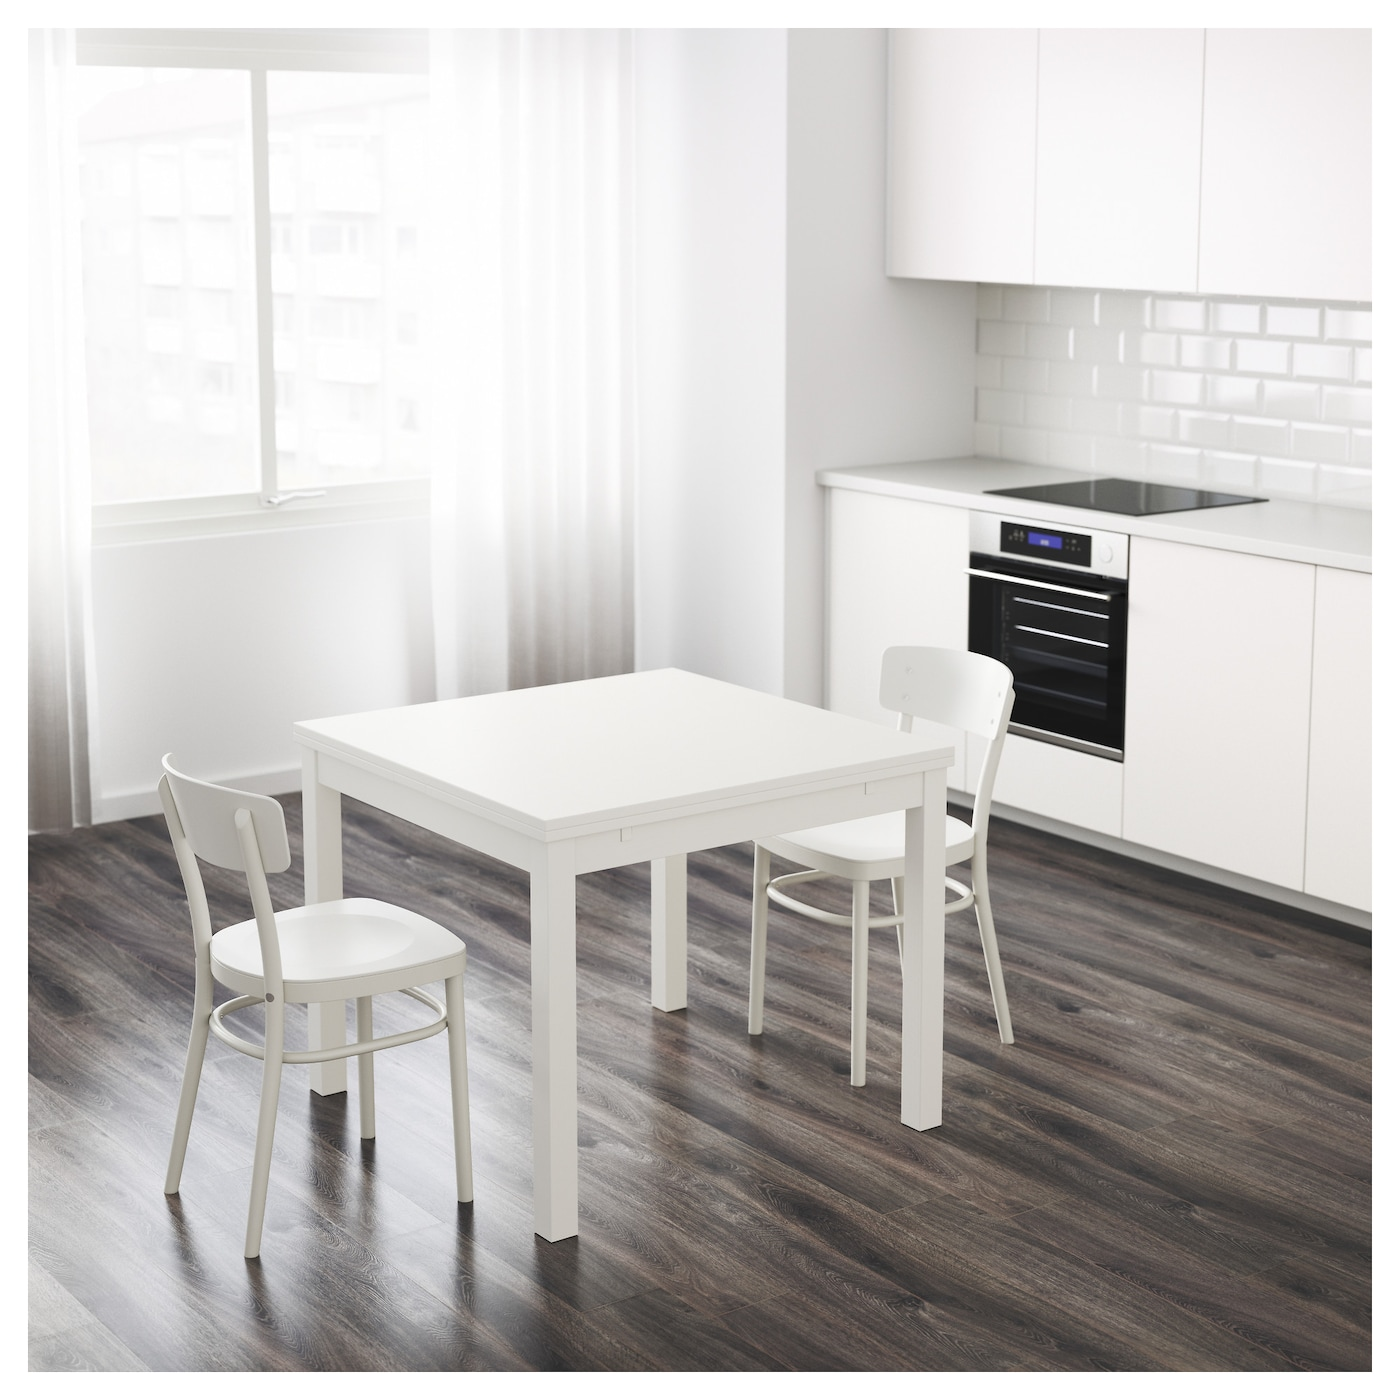 Bjursta extendable table white 90 129 168x90 cm ikea for Table ikea blanche